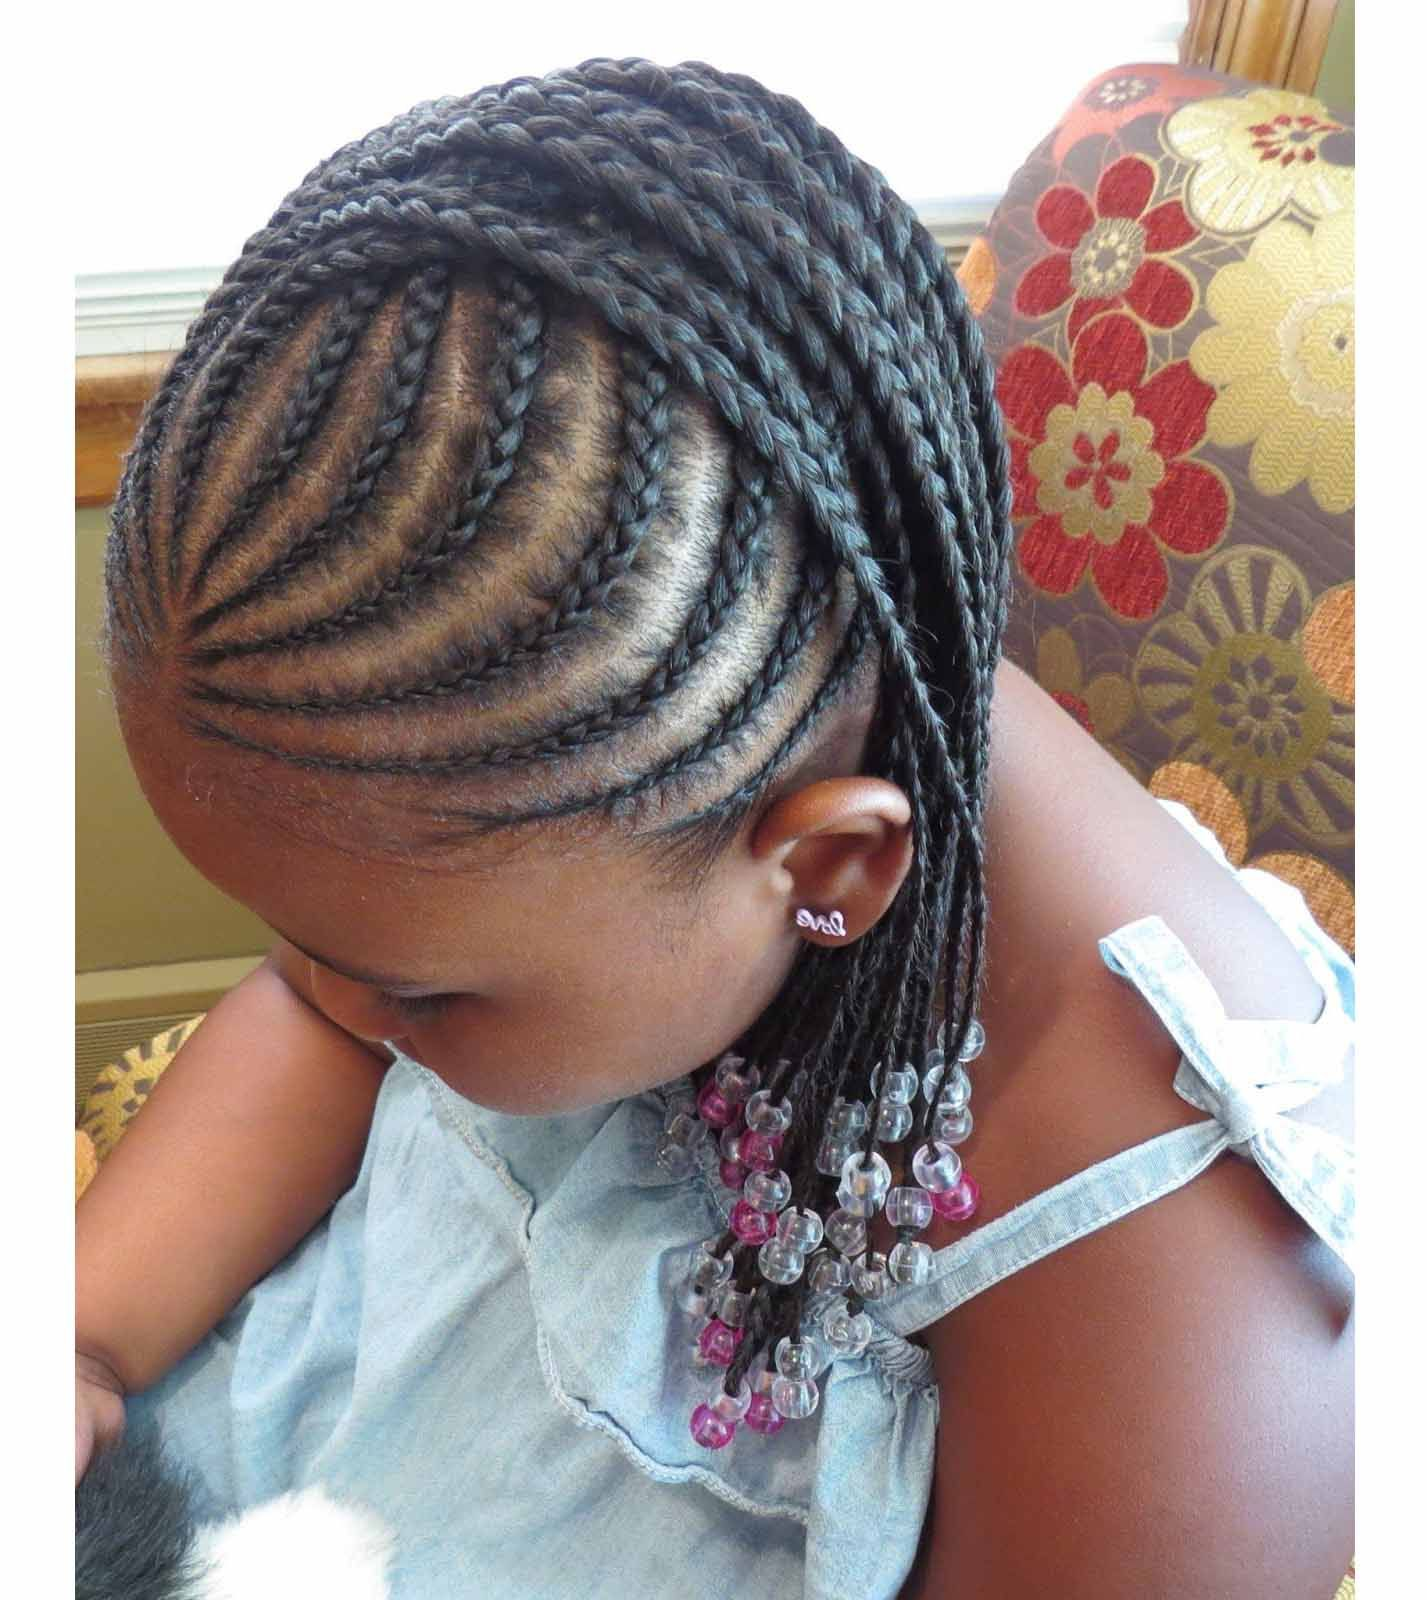 Phenomenal 1000 Images About Hair Dos On Pinterest Protective Hairstyles Short Hairstyles For Black Women Fulllsitofus